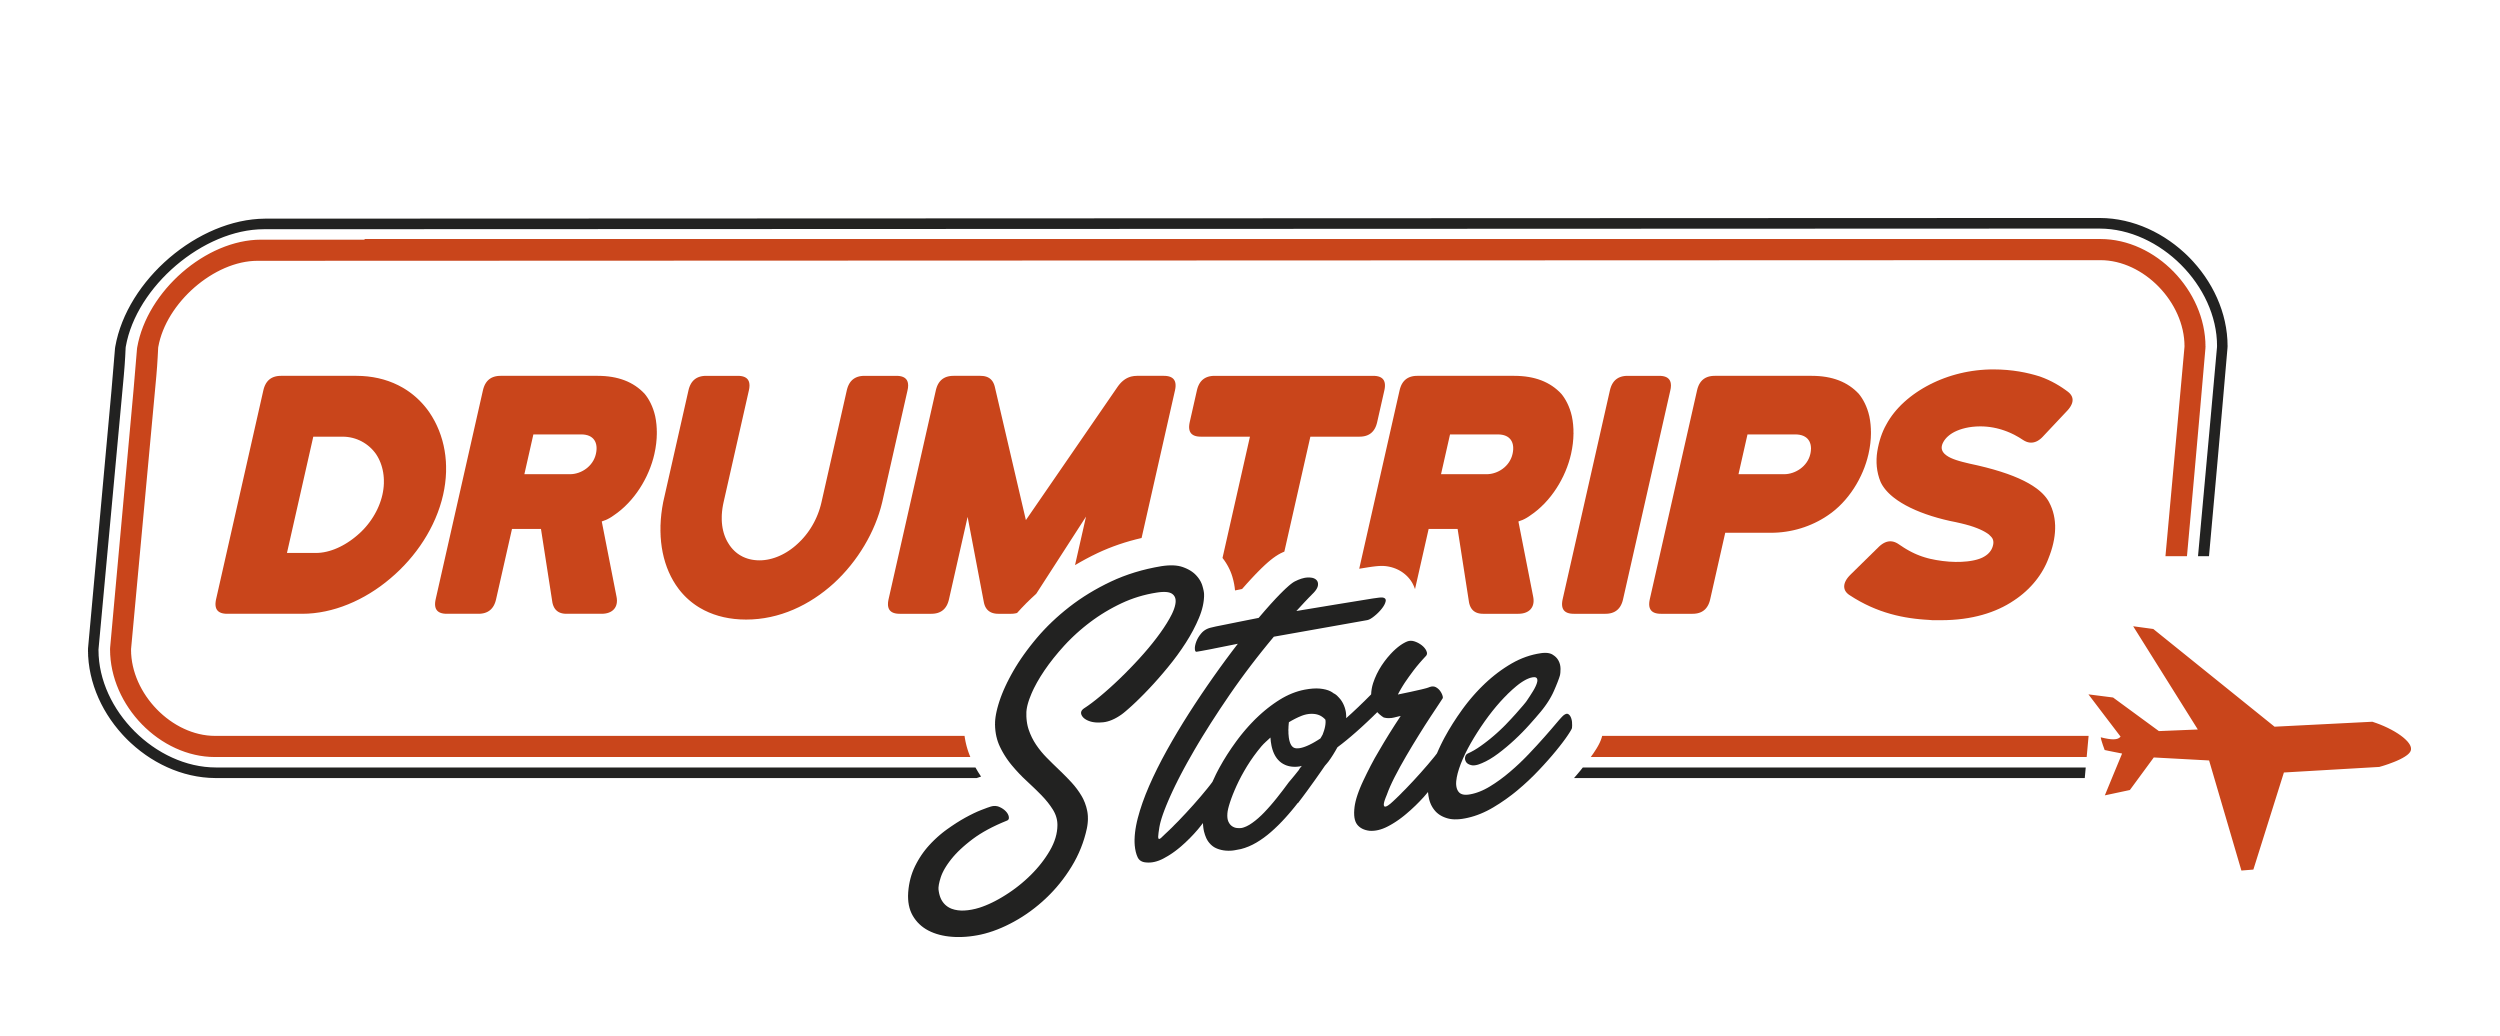 DRUMTRIPS STORE